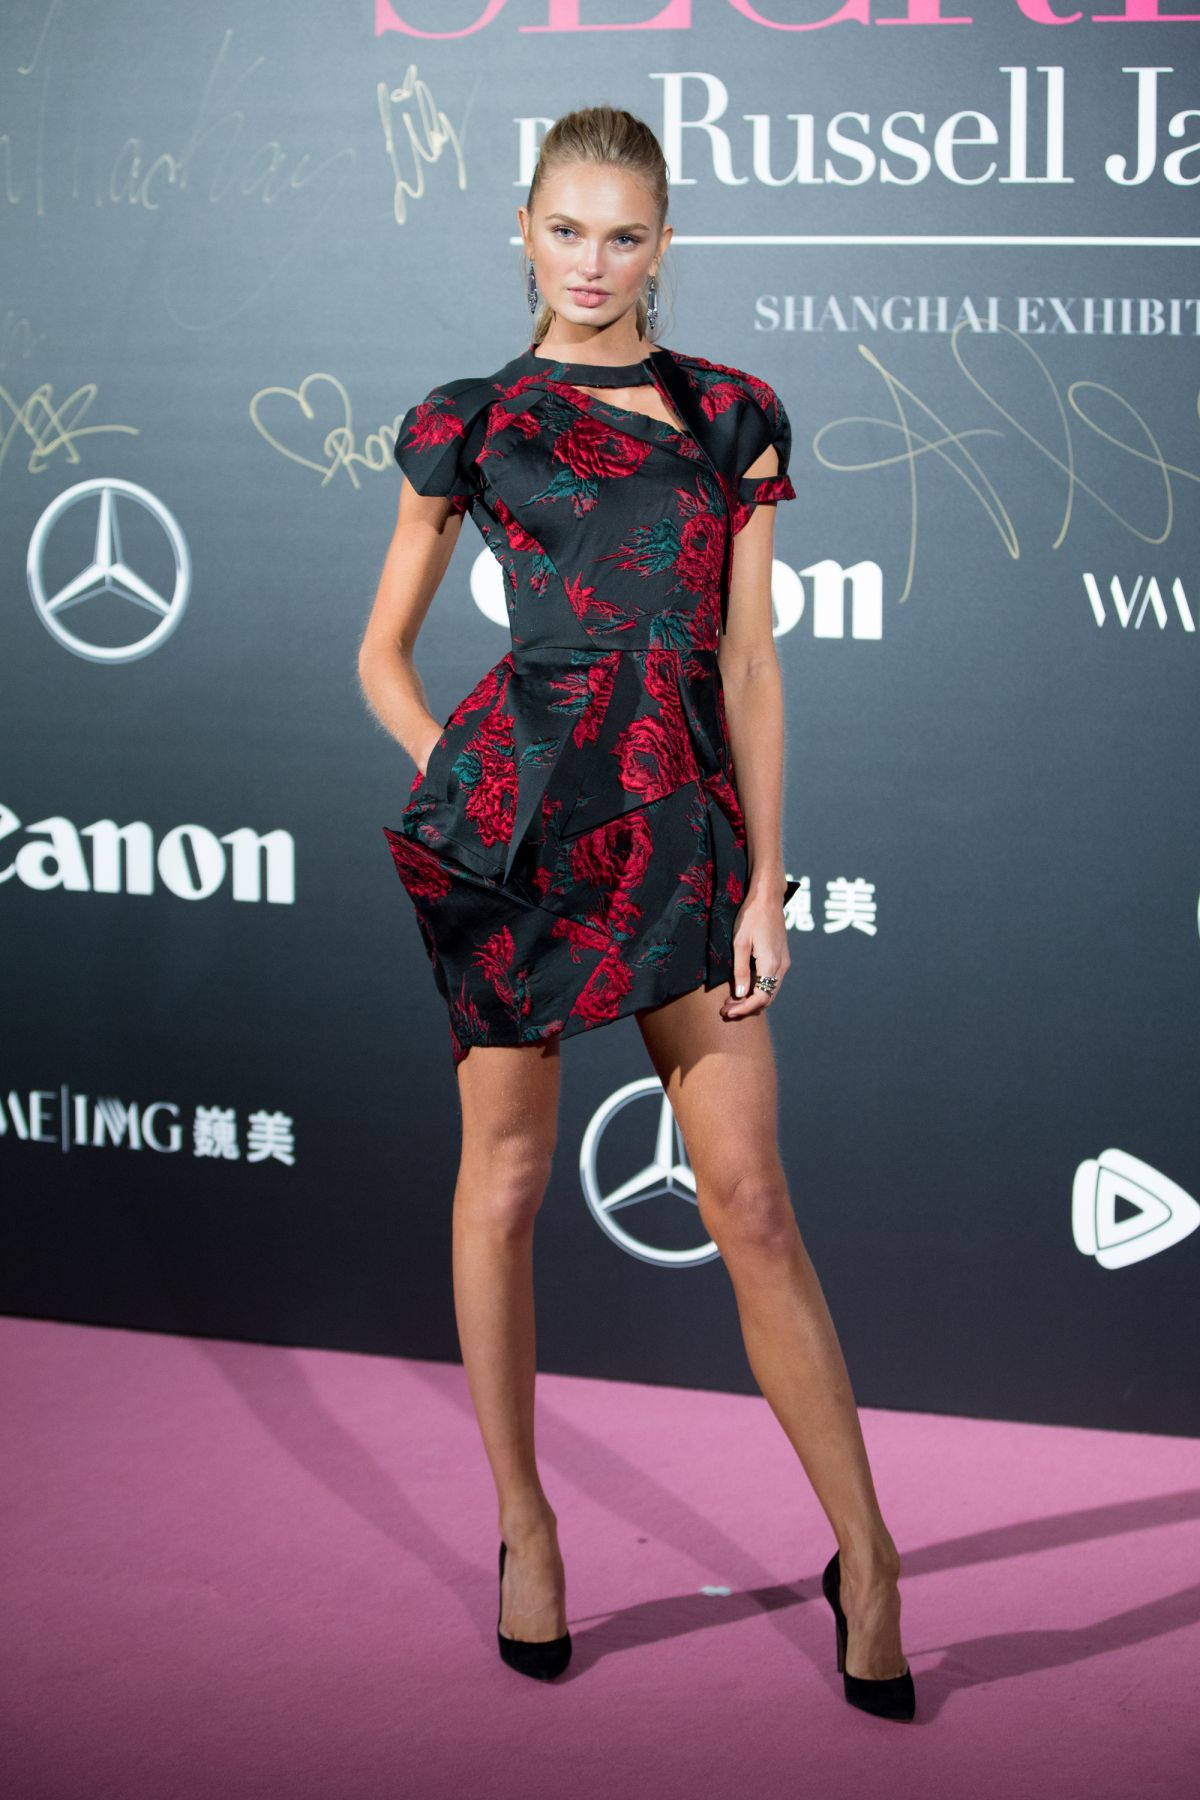 Romee Strijd Romee-strijd-at-mercedes-benz-backstage-secrets-by-russell-james-book-launch-and-shanghai-exhibition-opening-party-11-18-2017-6